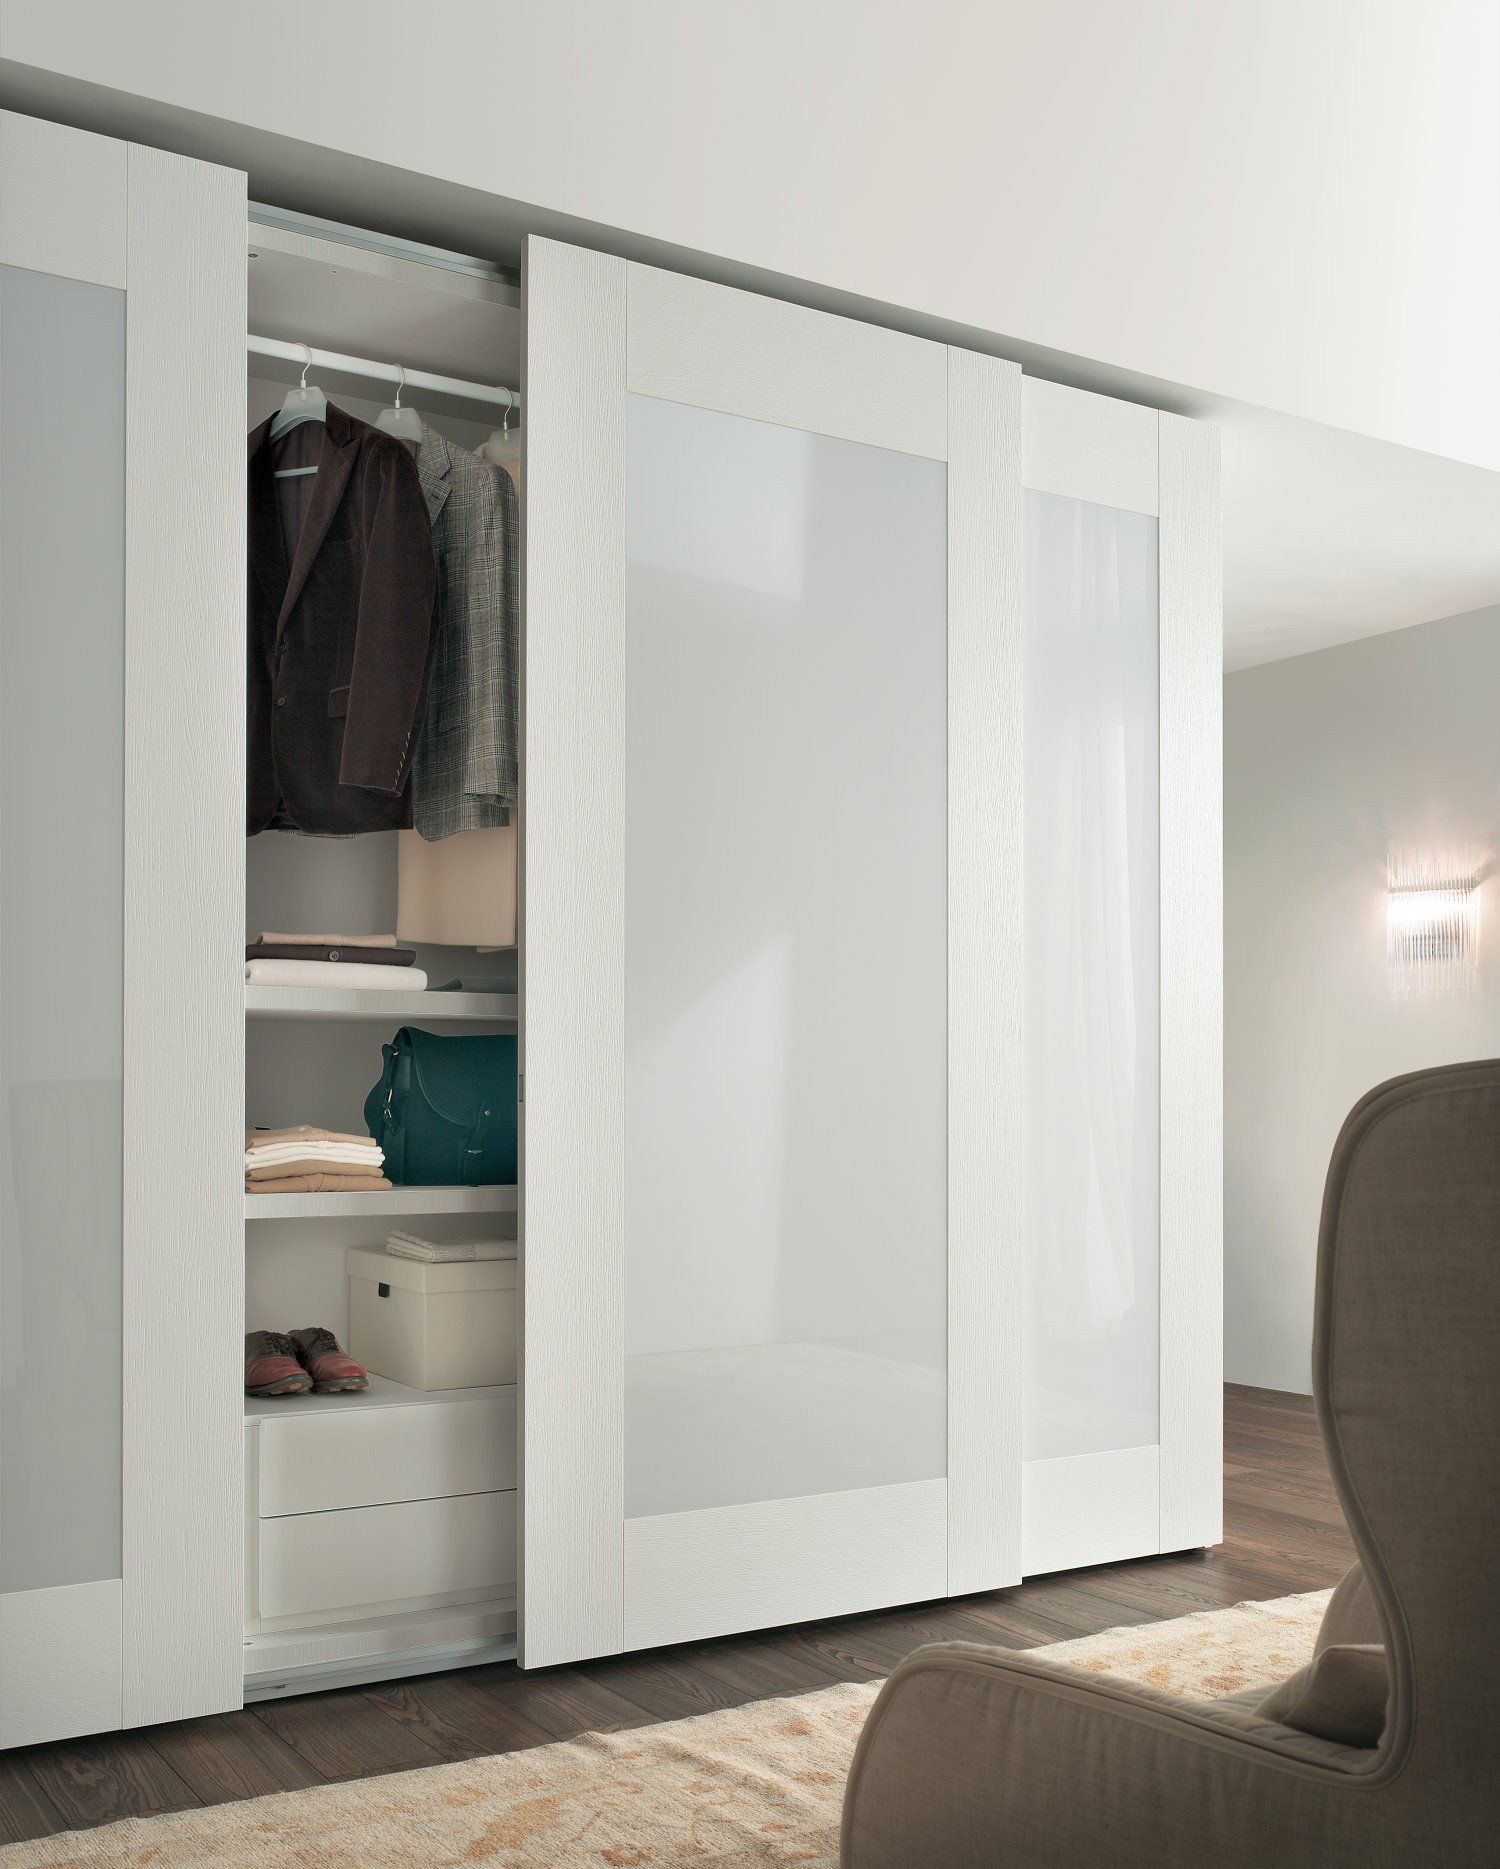 Bianco Armadio Due Ante Ikea.20 Best Closet Door Ideas That Won The Internet Stylish Design